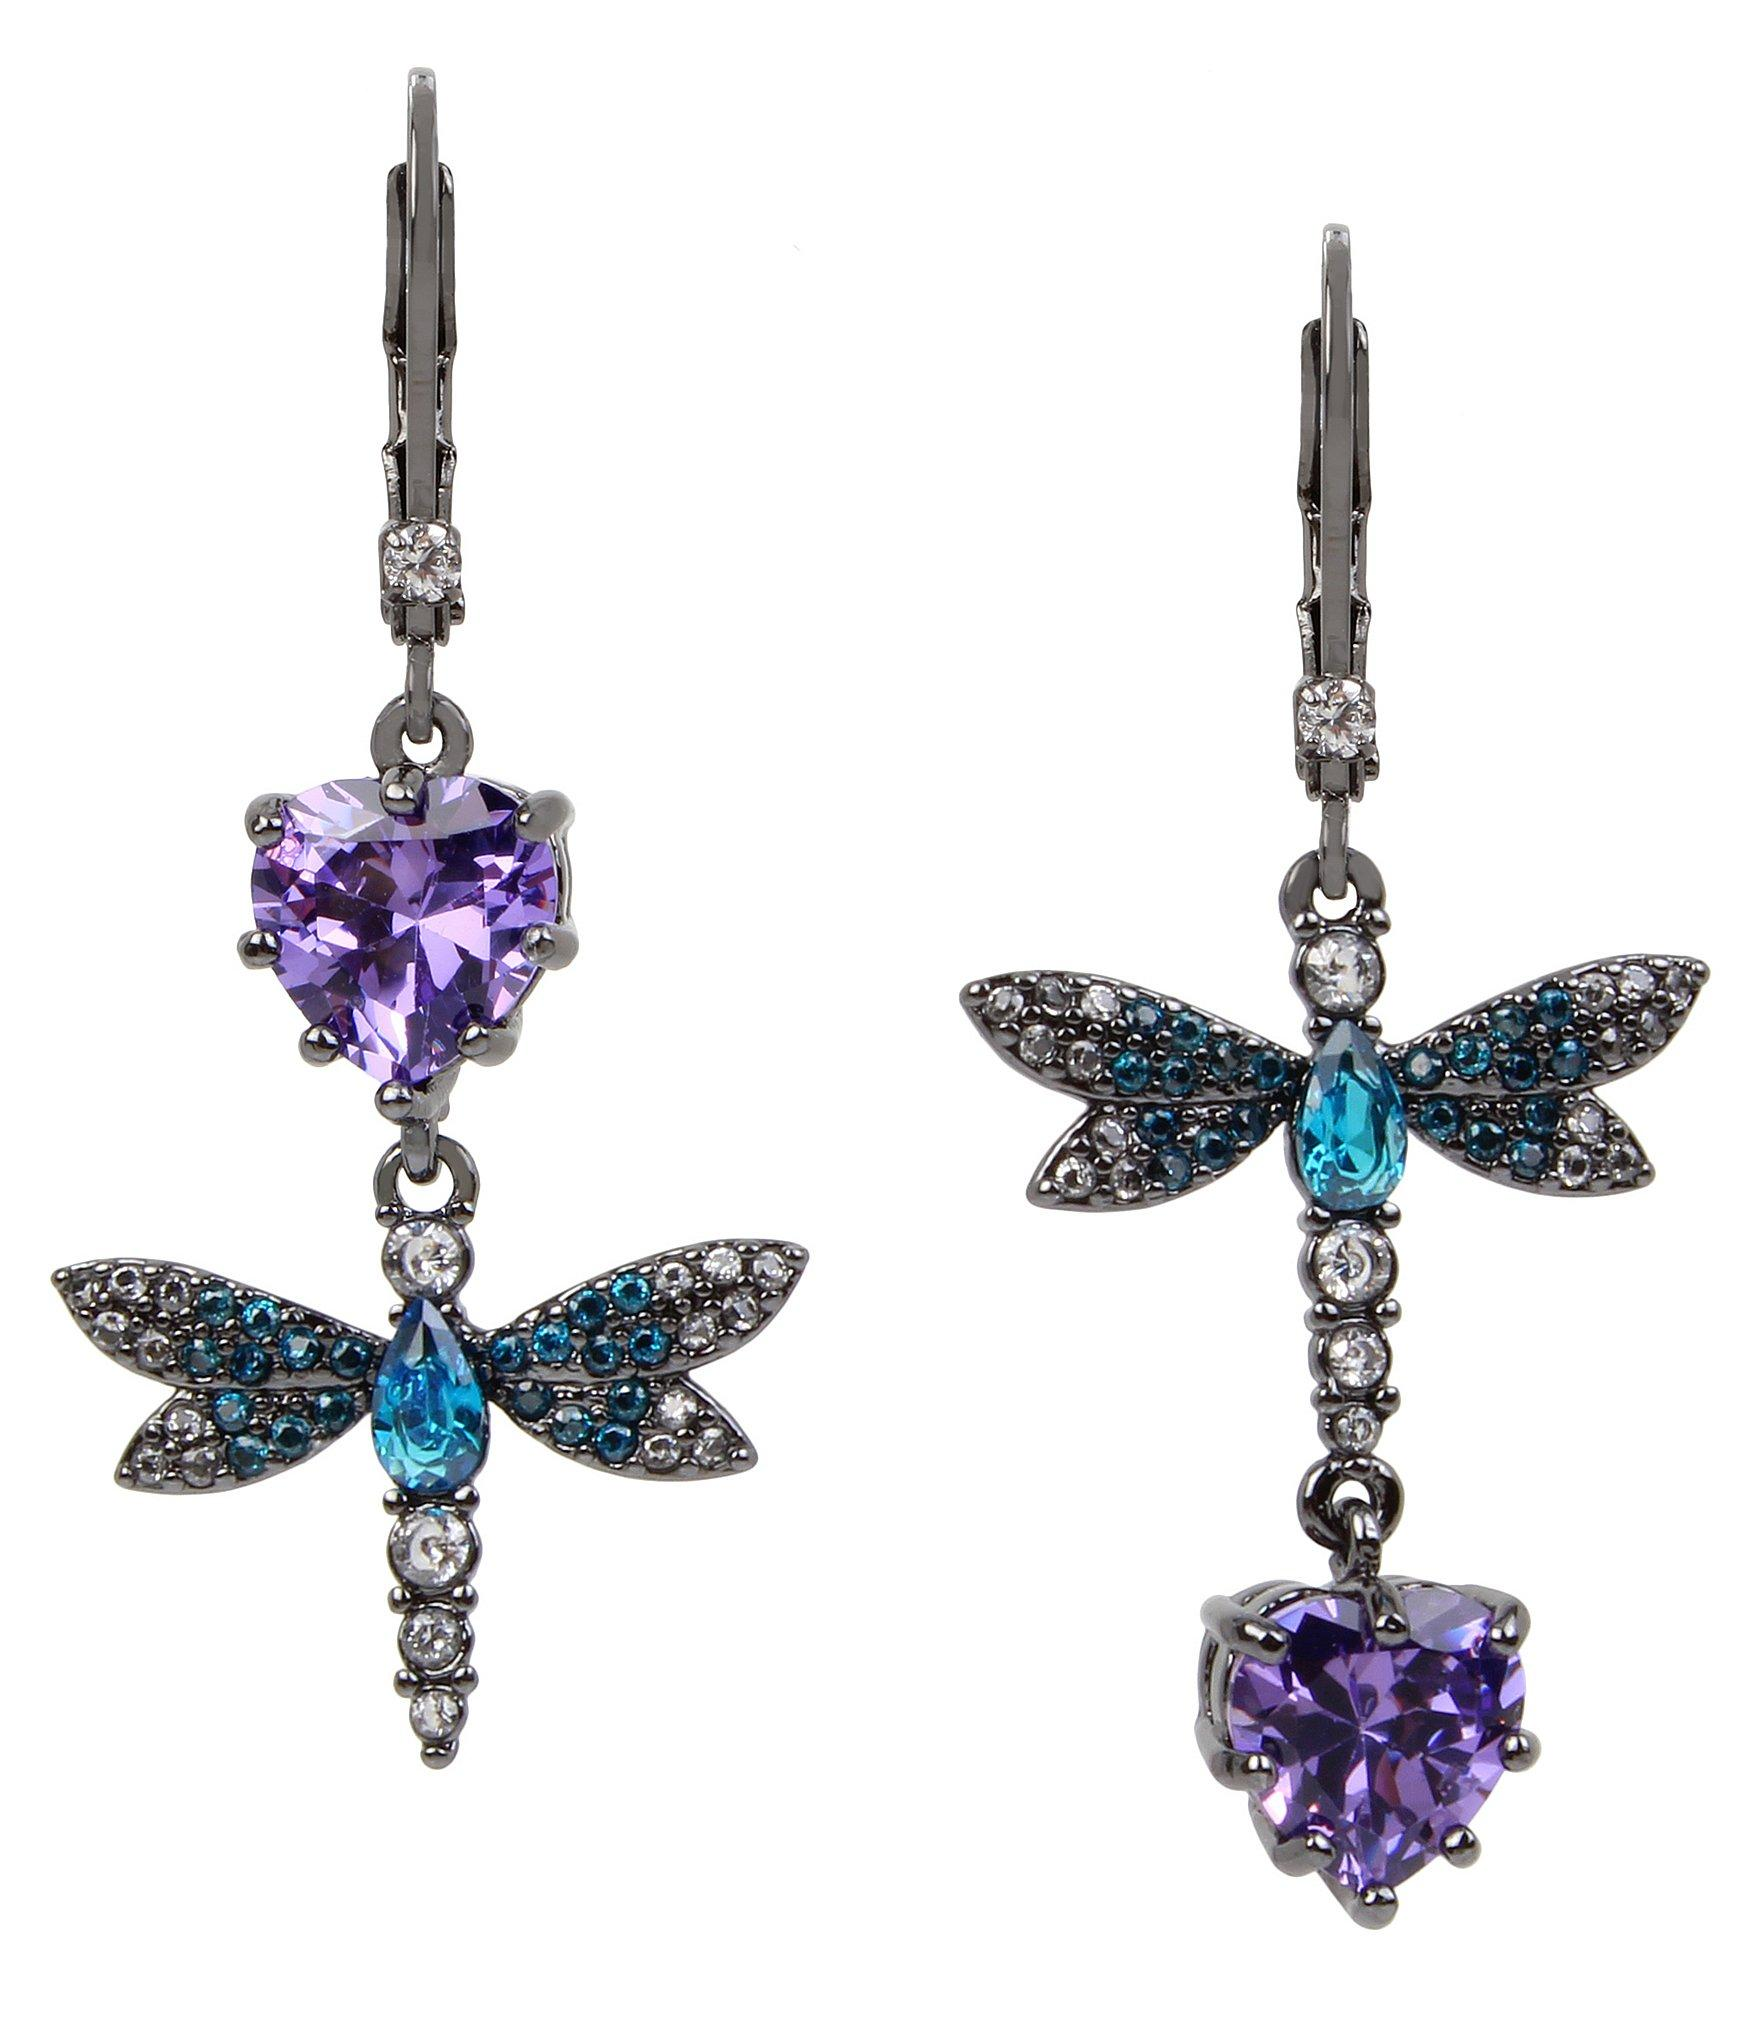 d9c8a3a70 Lyst - Betsey Johnson Cubic Zirconia Dragonfly Double-drop Mismatch ...